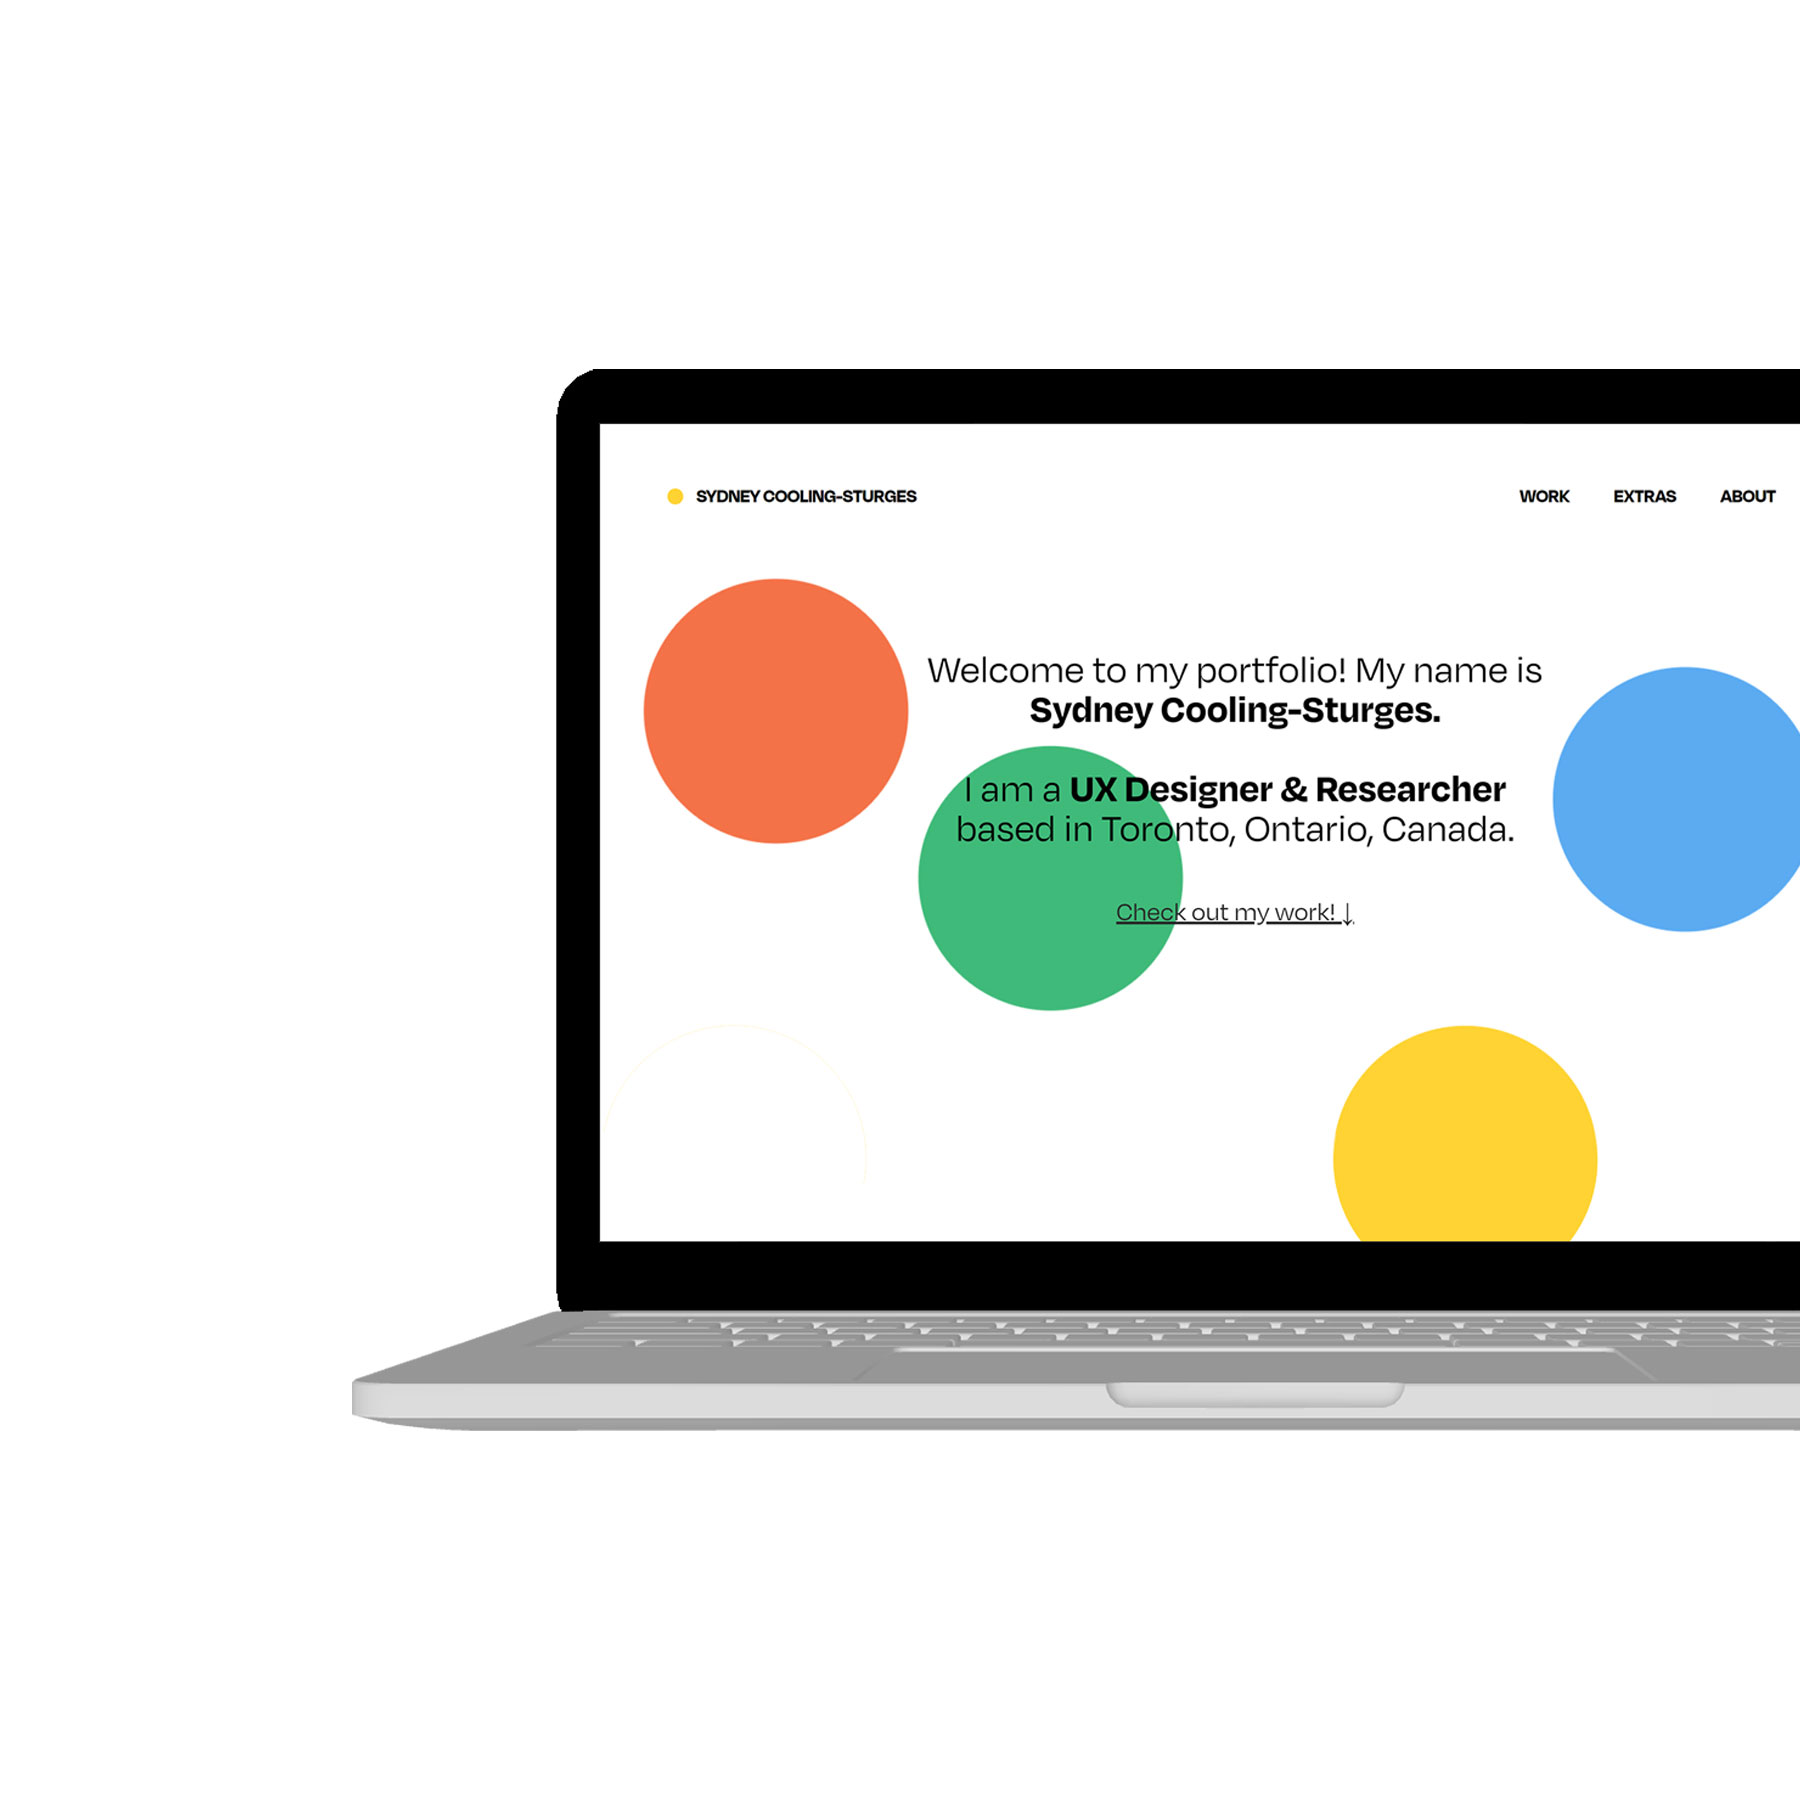 """A laptop interface displaying the home page of Sydney Cooling-Sturges's portfolio. The screen has a white background and shows 4 medium circles scattered on the page in red, green, blue, and yellow. On top of these circles reads """"Welcome to my portfolio! My name is Sydney Cooling-Sturges. I am a UX Designer & Researcher based in Toronto, Ontario, Canada."""""""